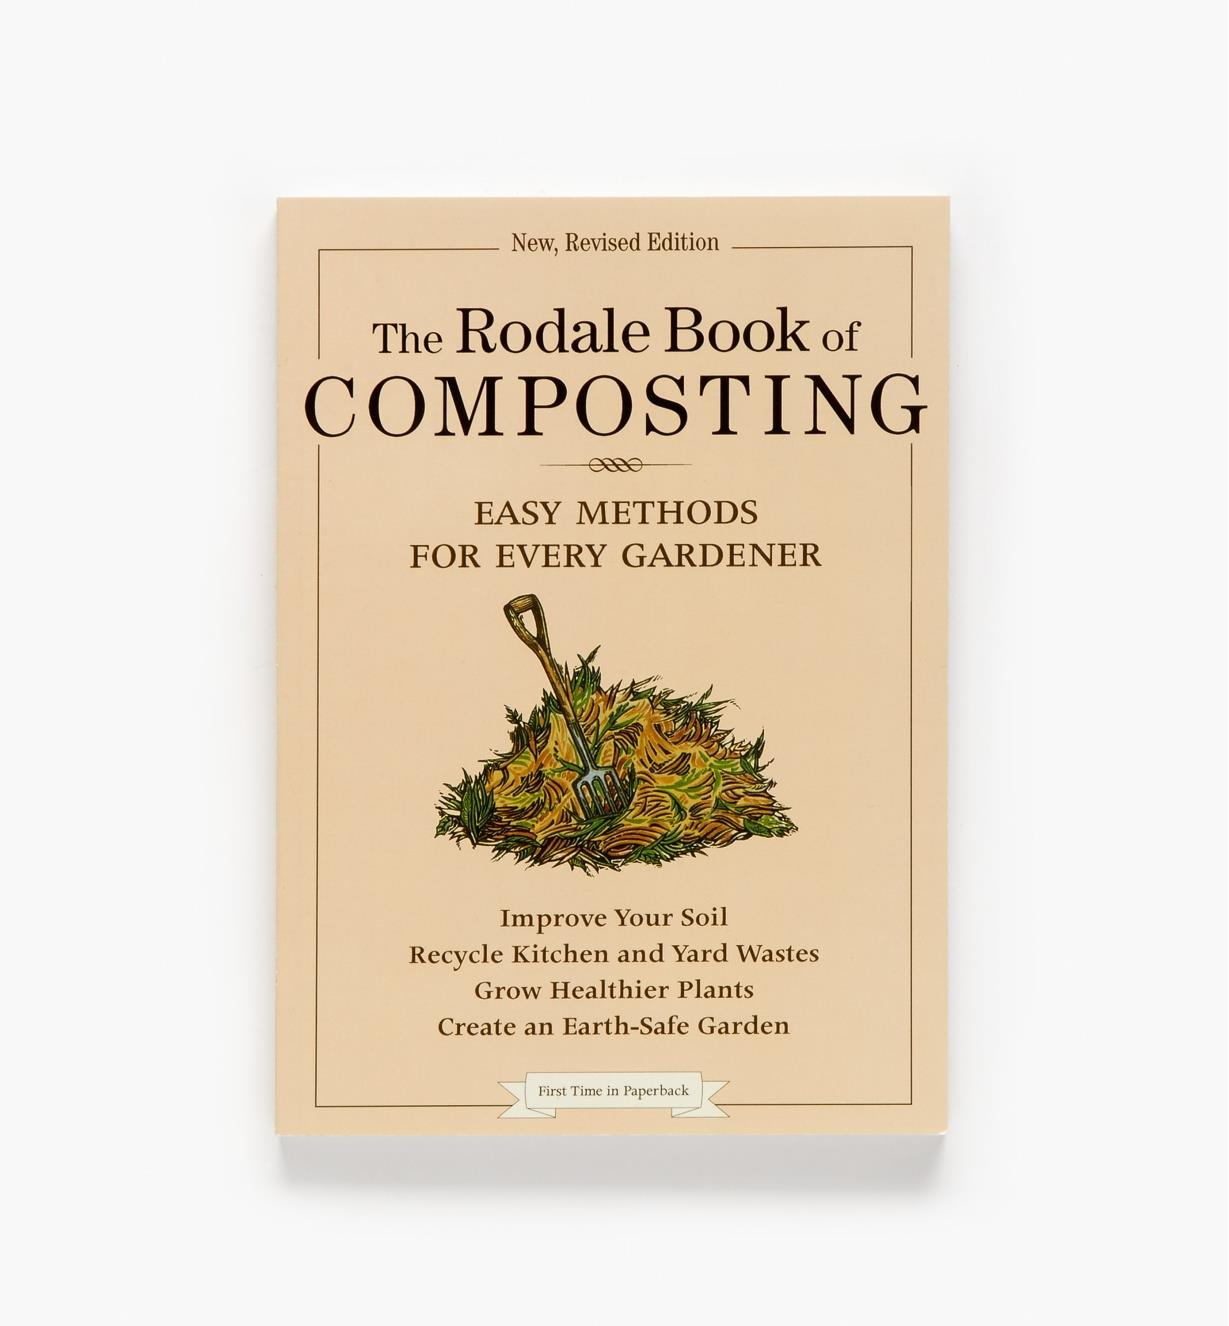 LA606 - The Rodale Book of Composting